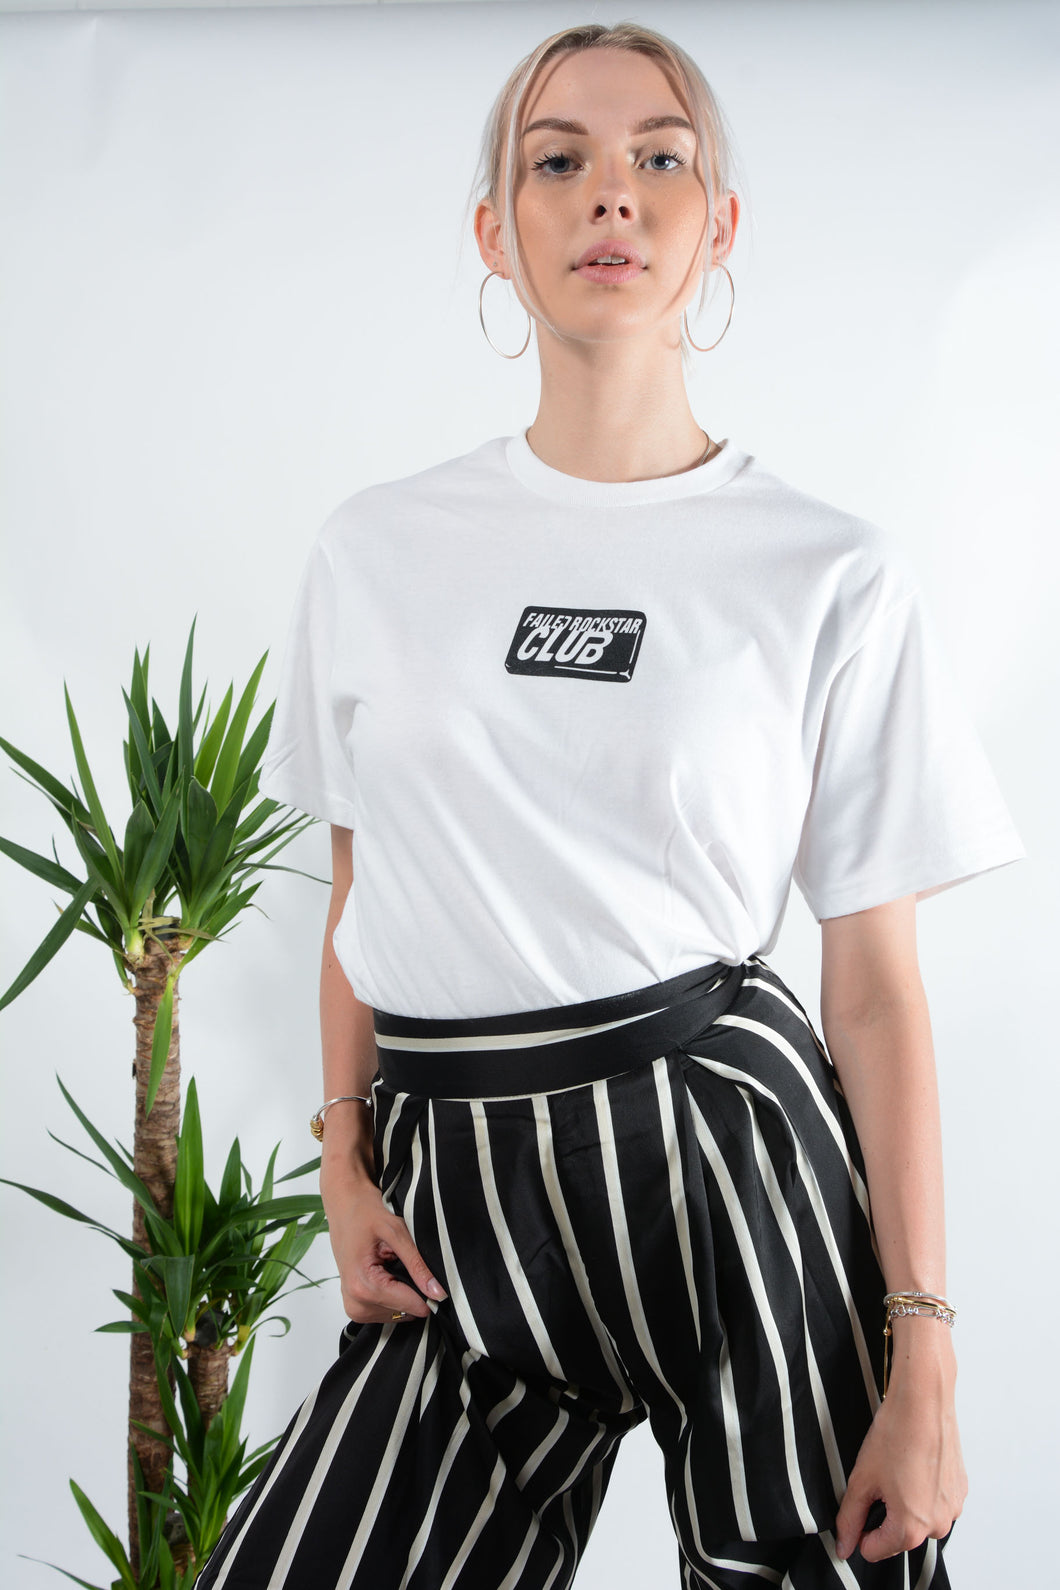 FRC soap logo t-shirt in white